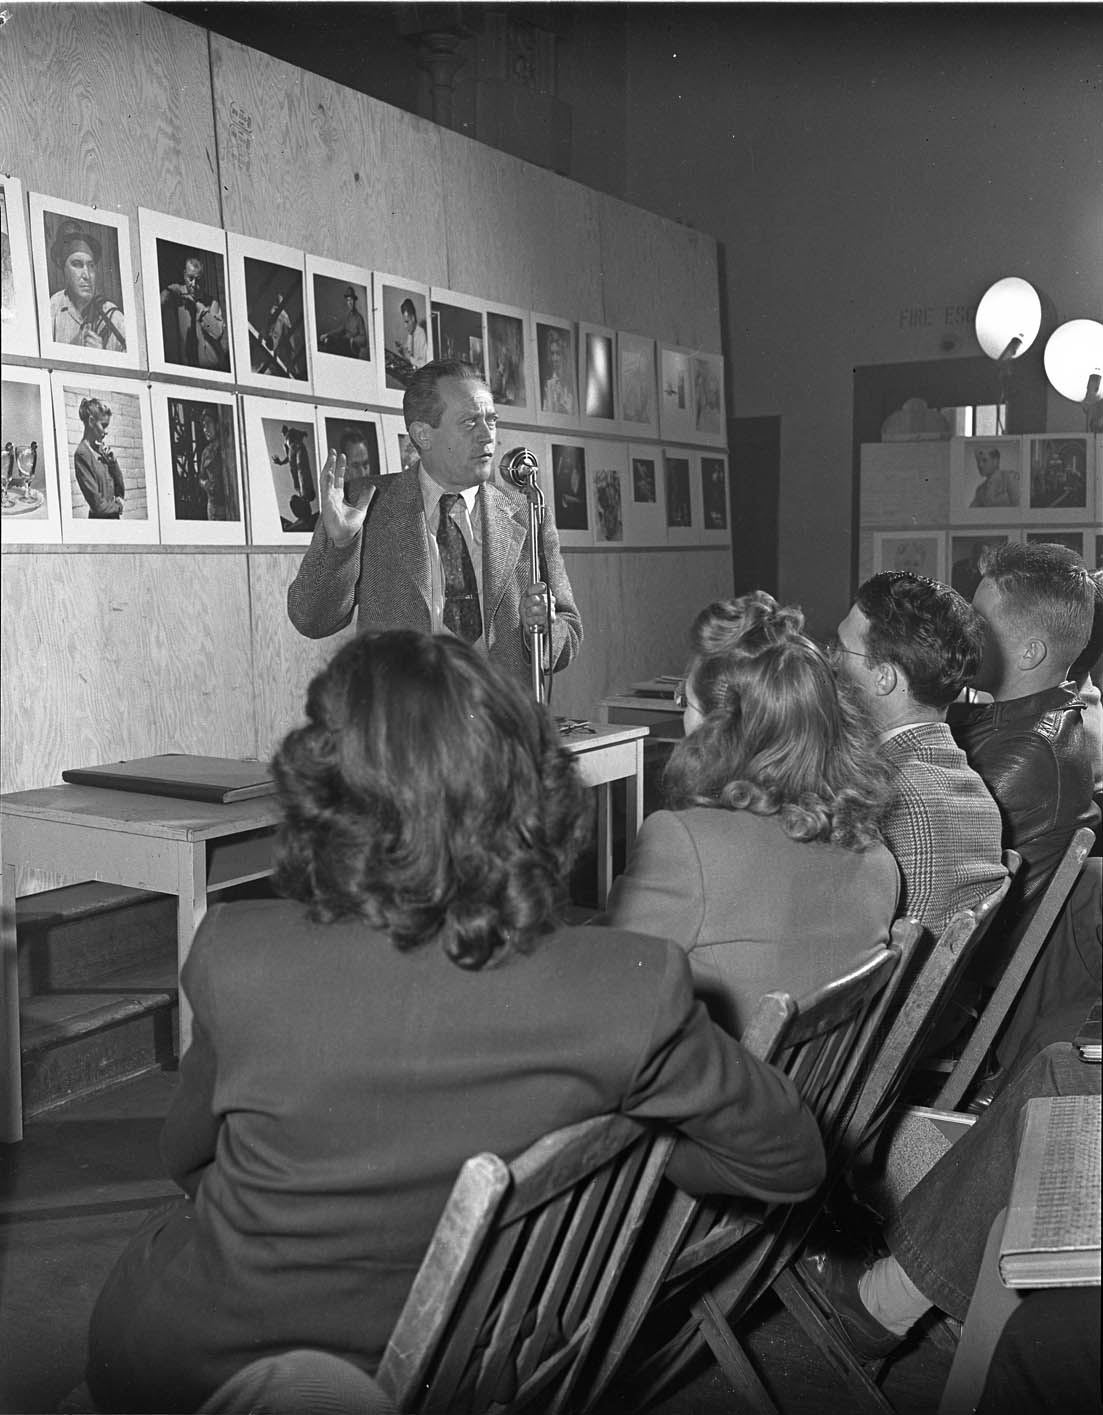 Drawing instructor Lorser Feitelson speaks in front of a classroom of students. Student work is displayed on the wall behind Feitelson, ca.1949-50.